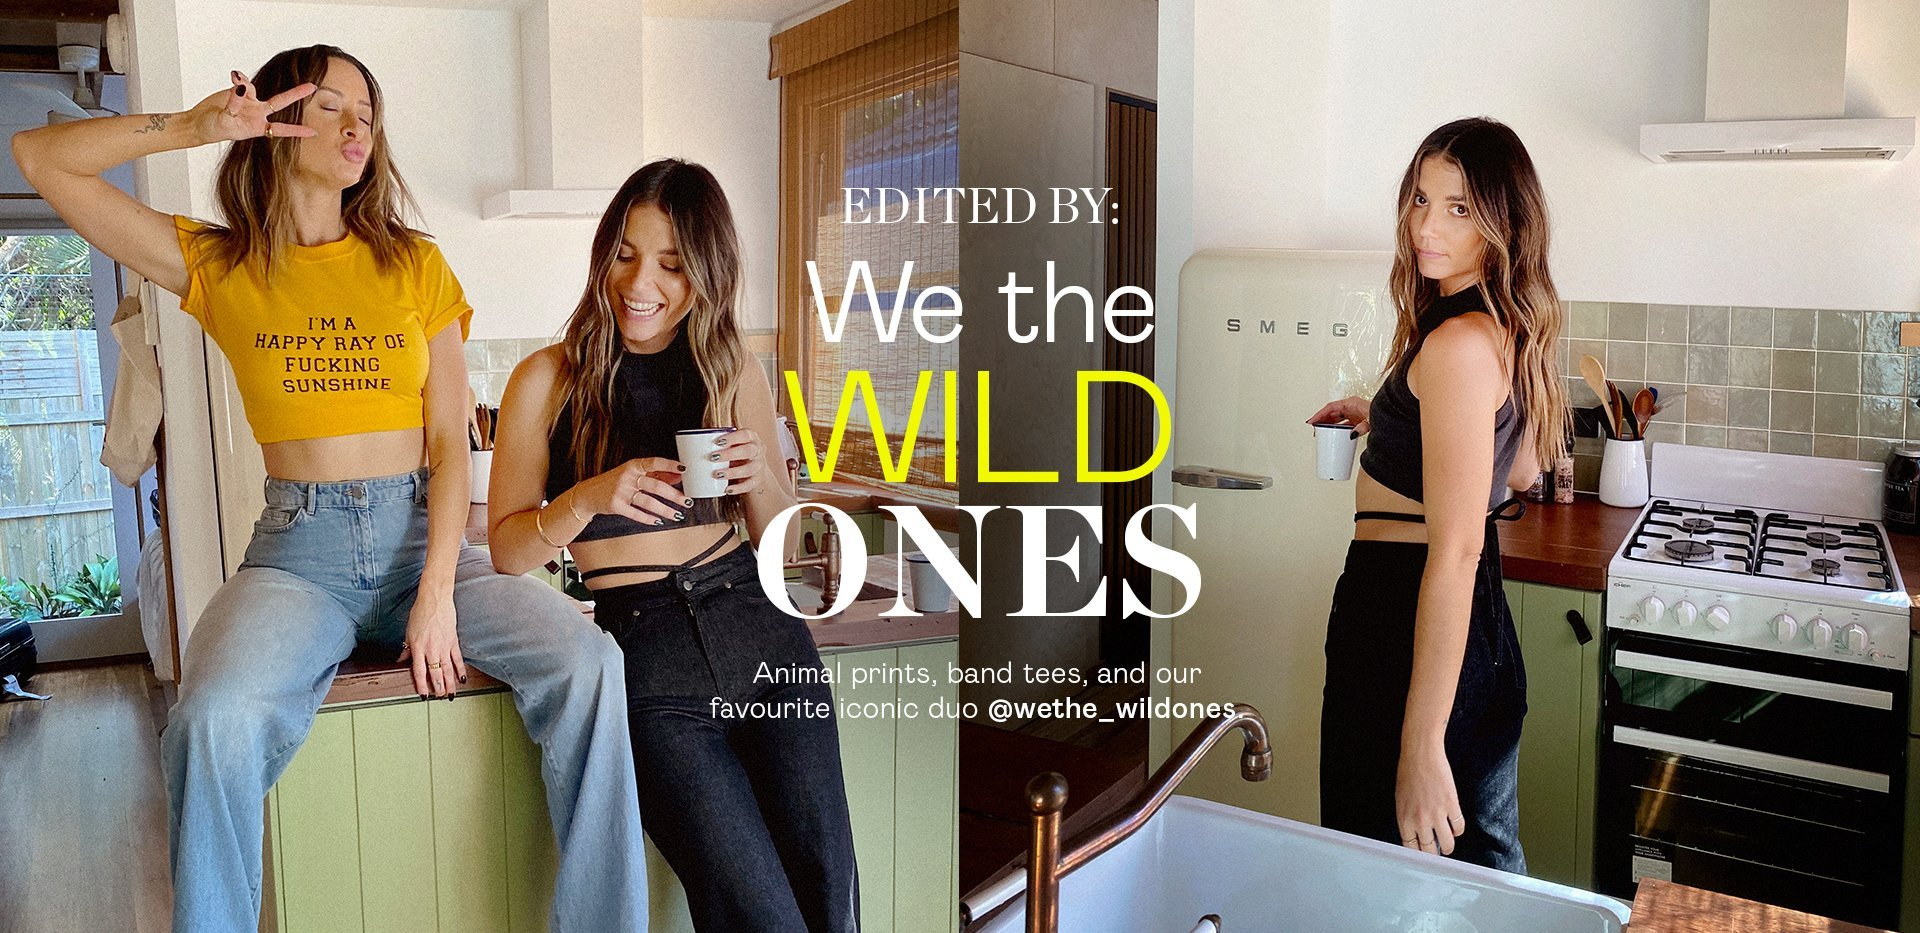 Edited By: We the Wild Ones